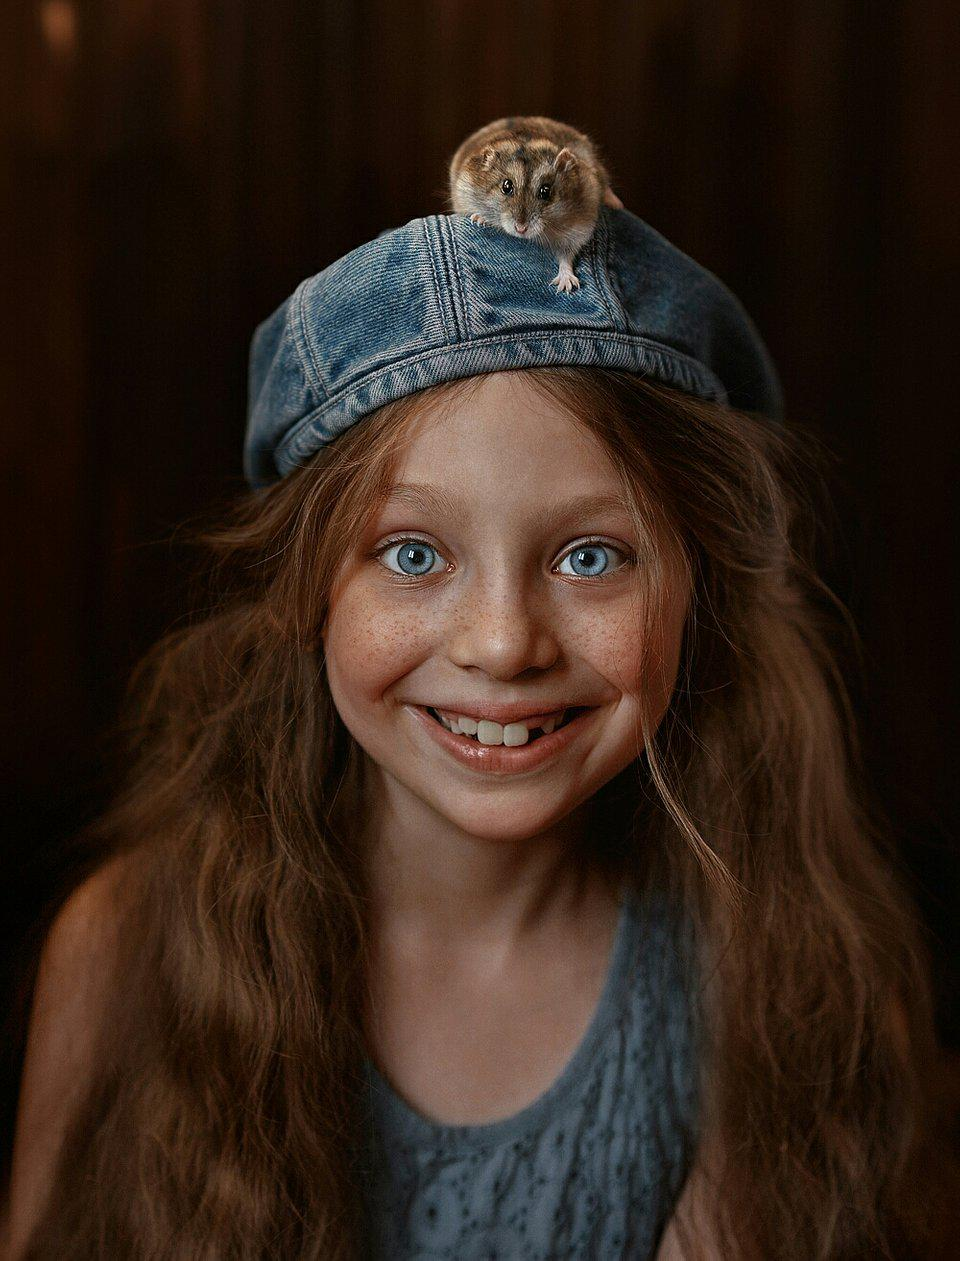 Redhead with hamster on her head